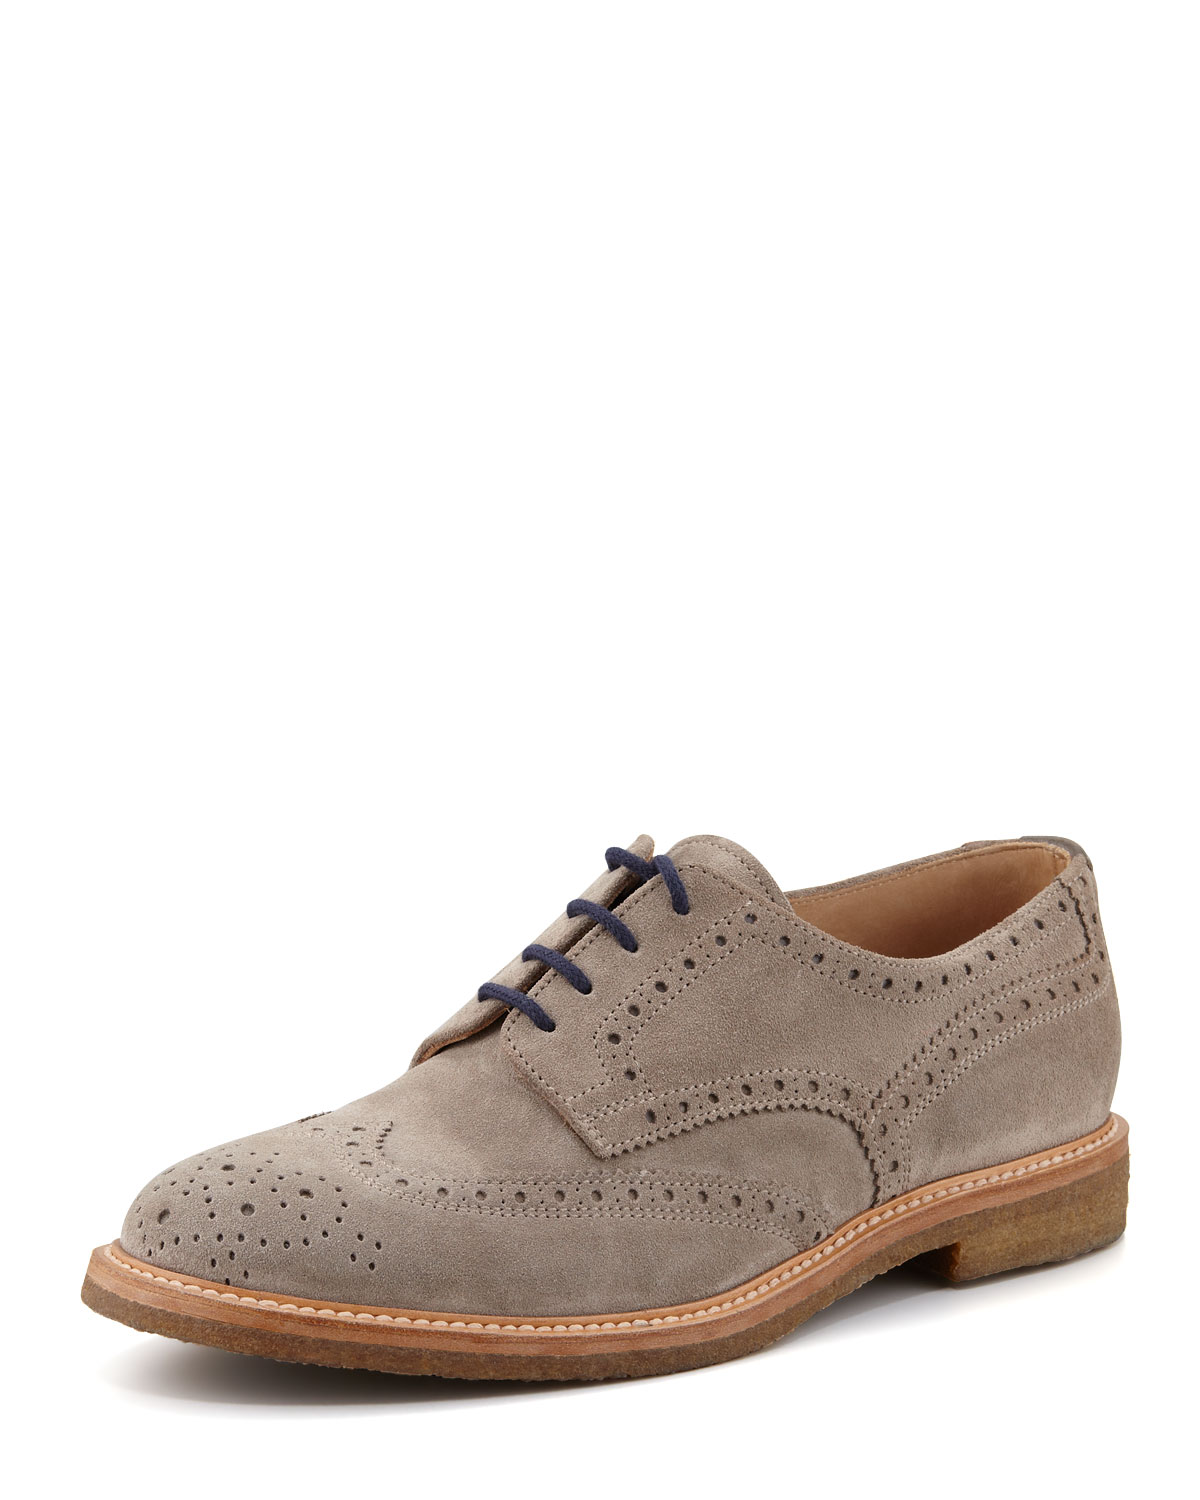 Brunello Cucinelli Crepe-Sole Suede Wing-Tip, Gray